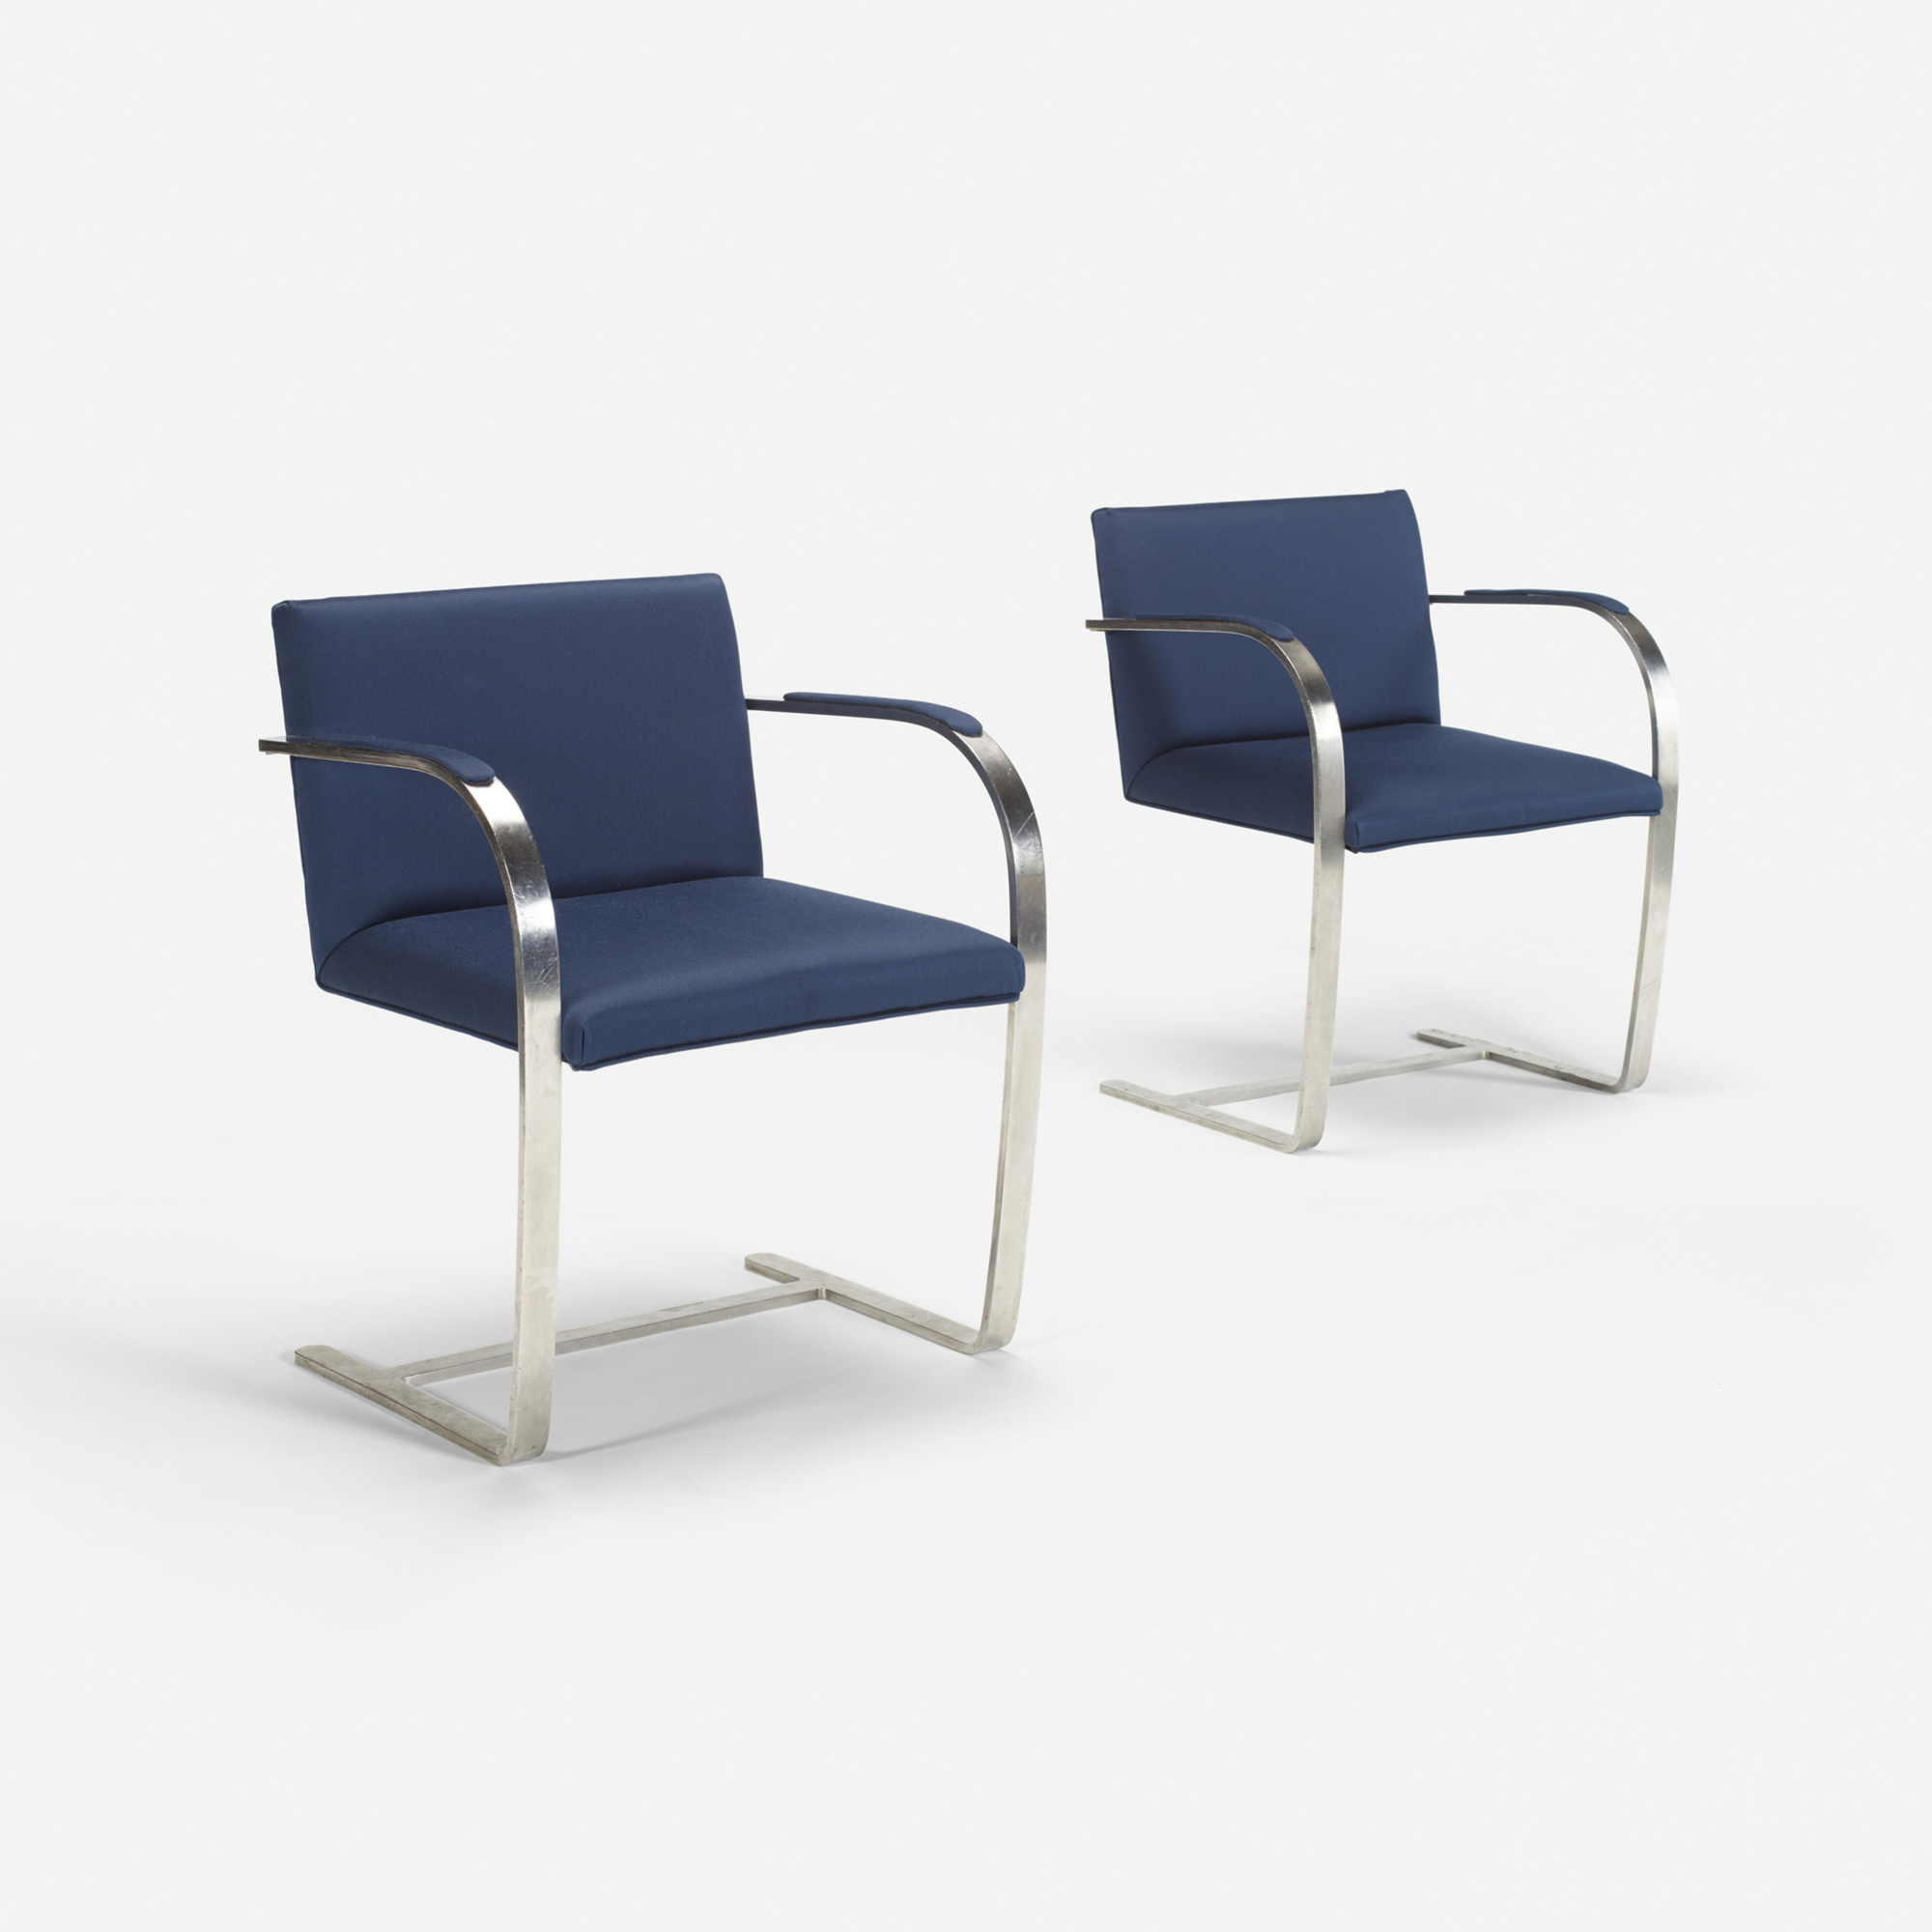 210: Ludwig Mies van der Rohe / Brno chairs from The Four Seasons, pair (1 of 1)